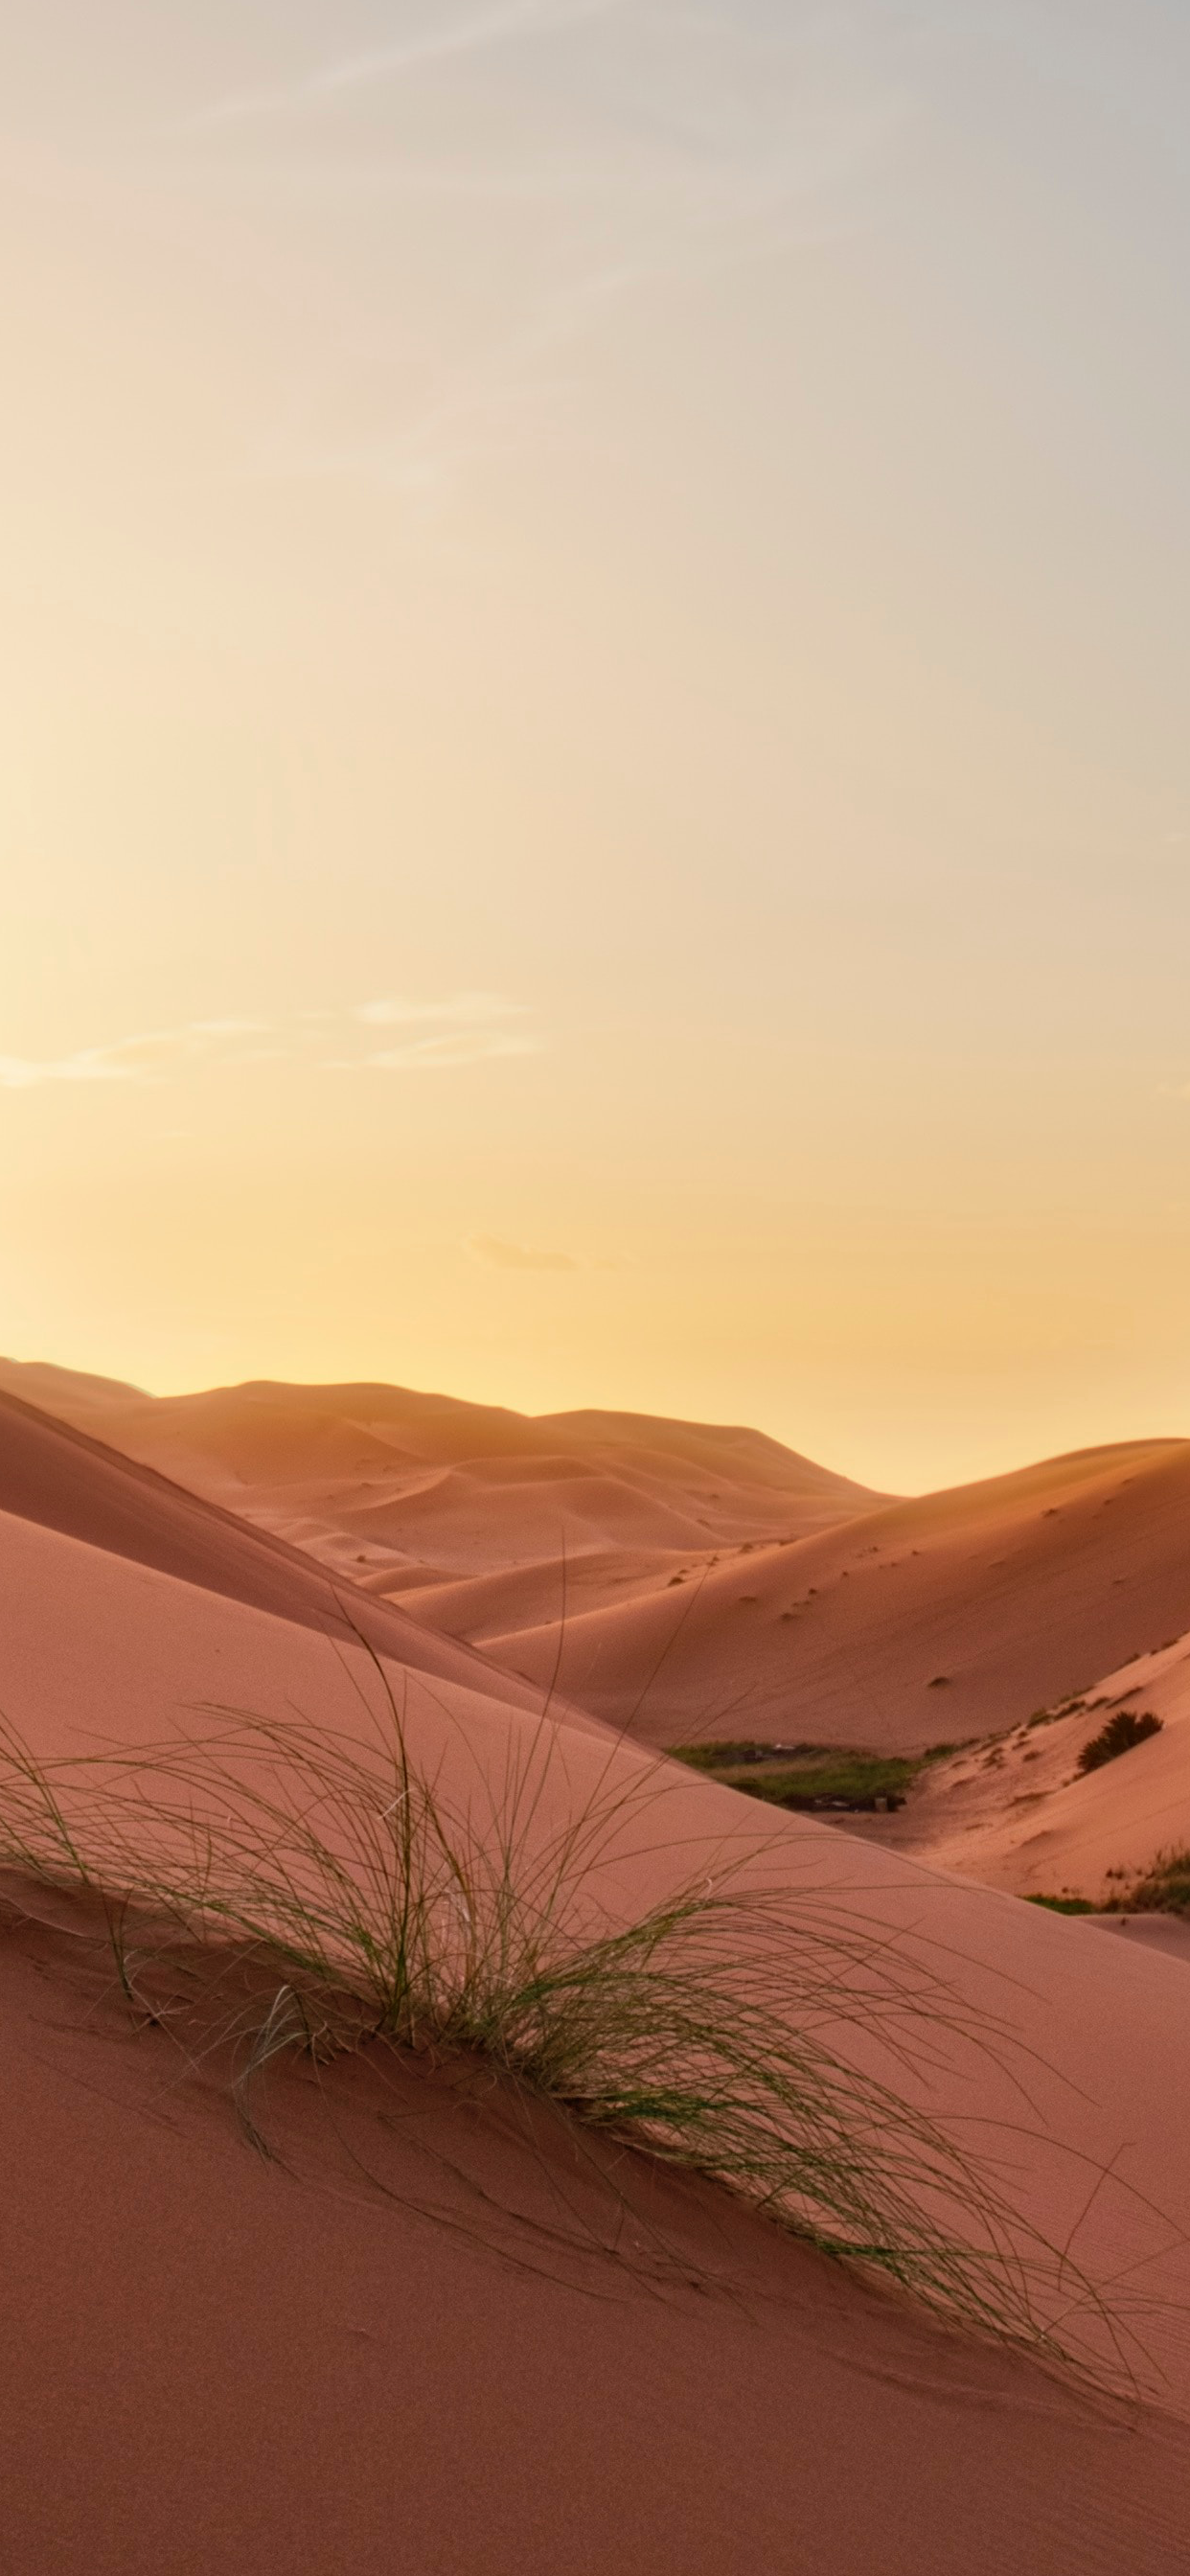 iPhone wallpapers morocco desert Fonds d'écran iPhone du 09/08/2019